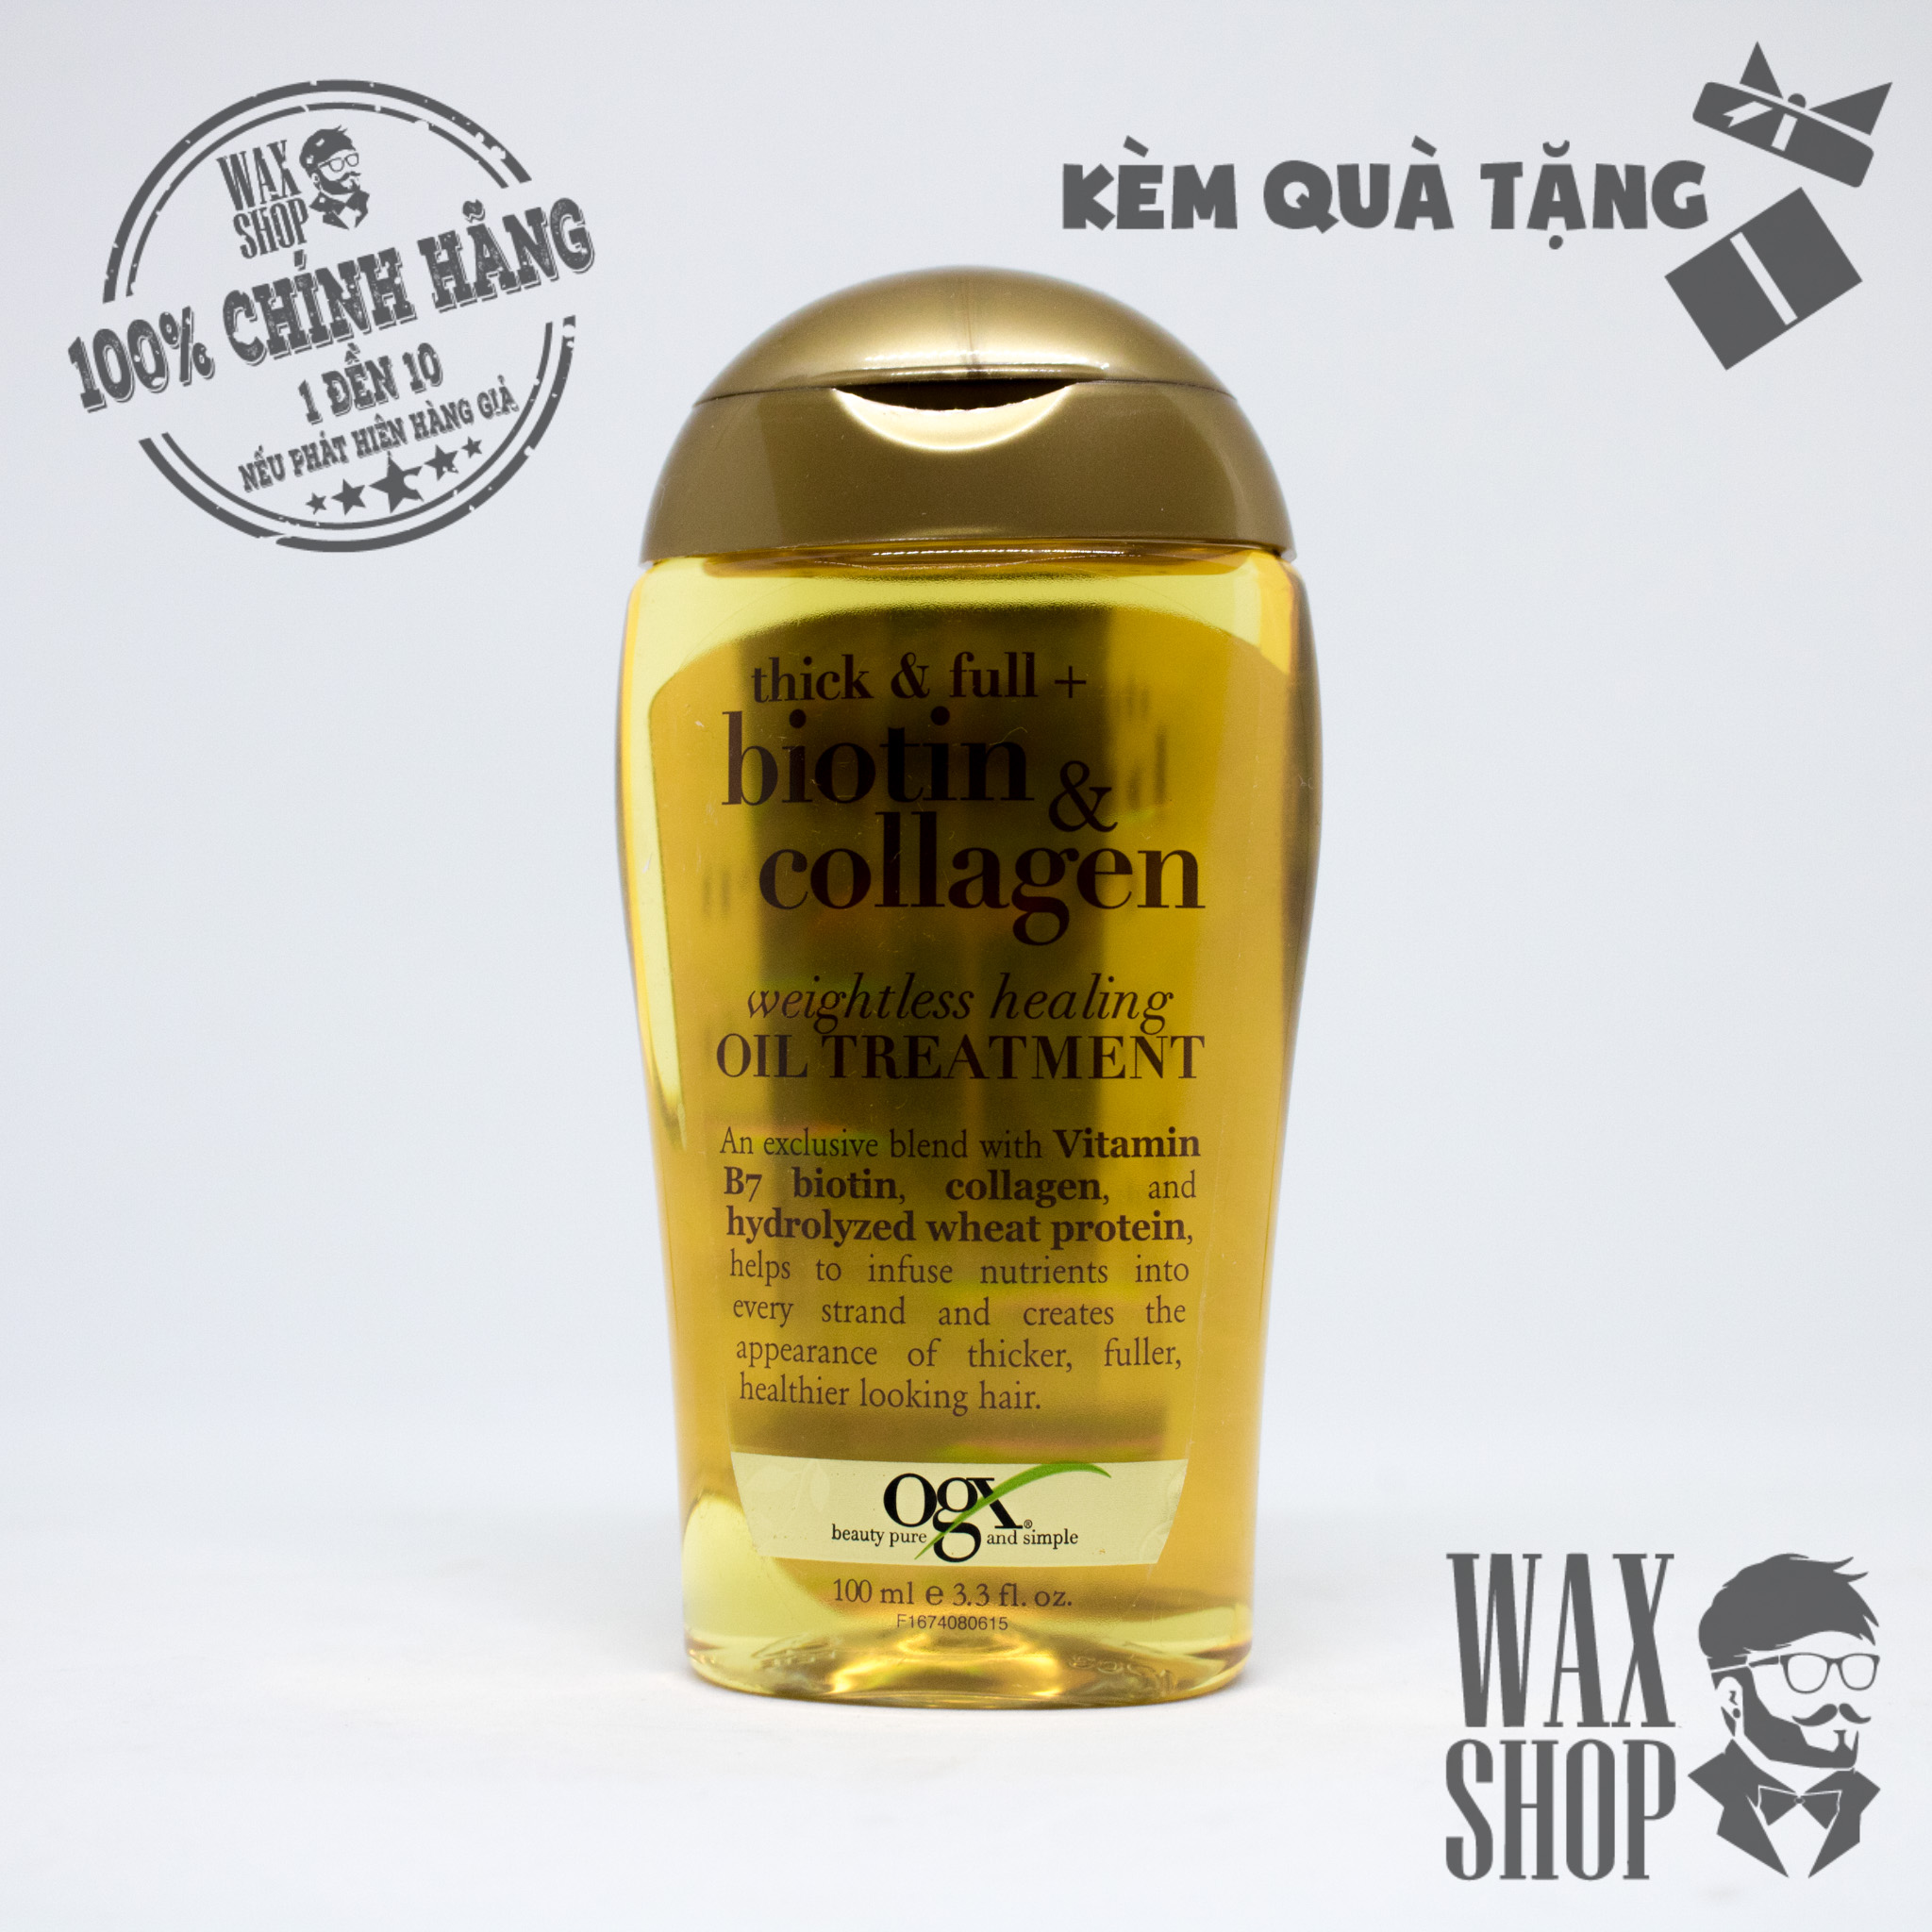 Biotin & Collagen Oil Treatment